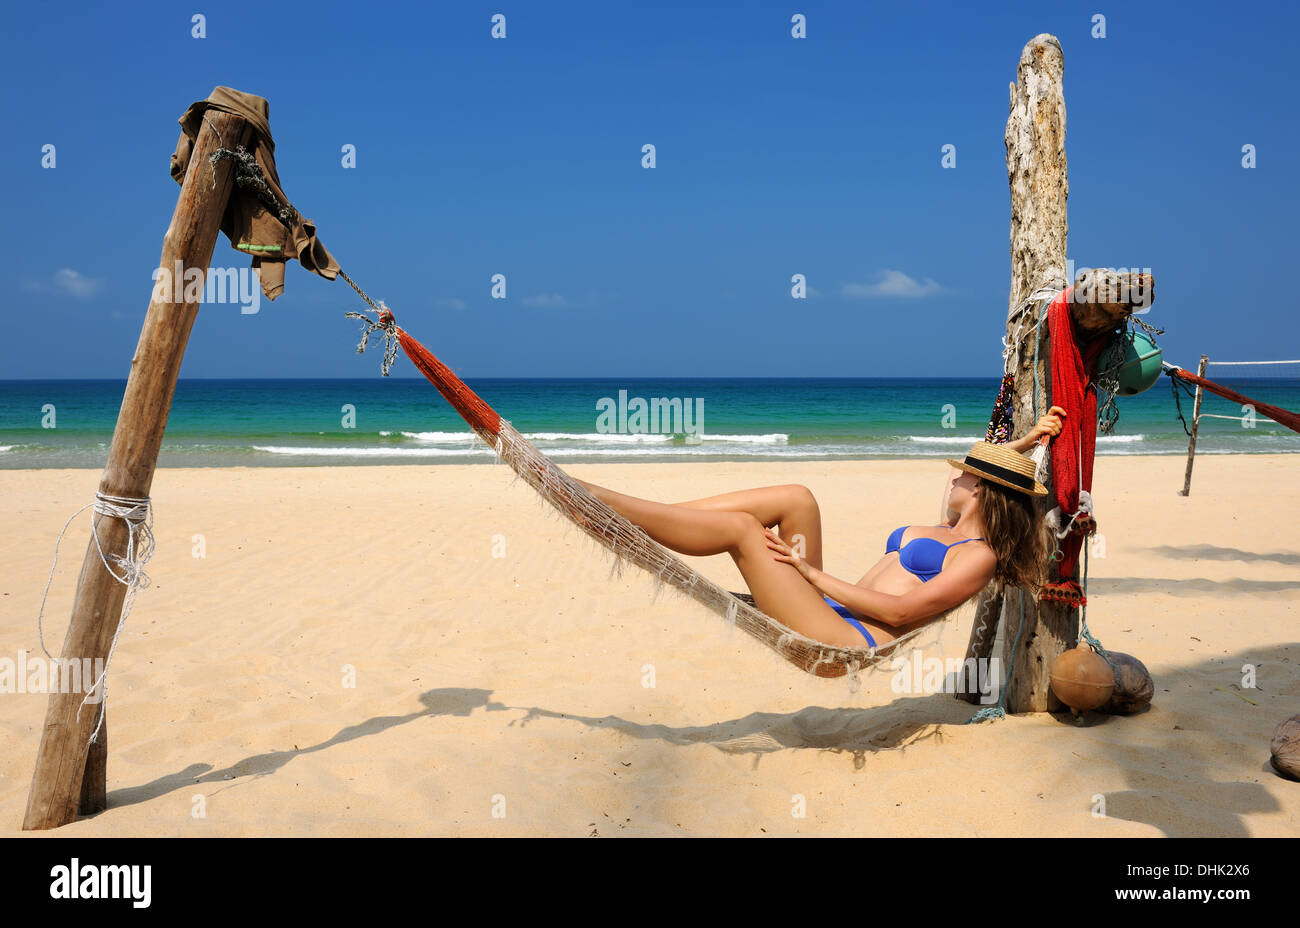 Woman in hammock on beach - Stock Image